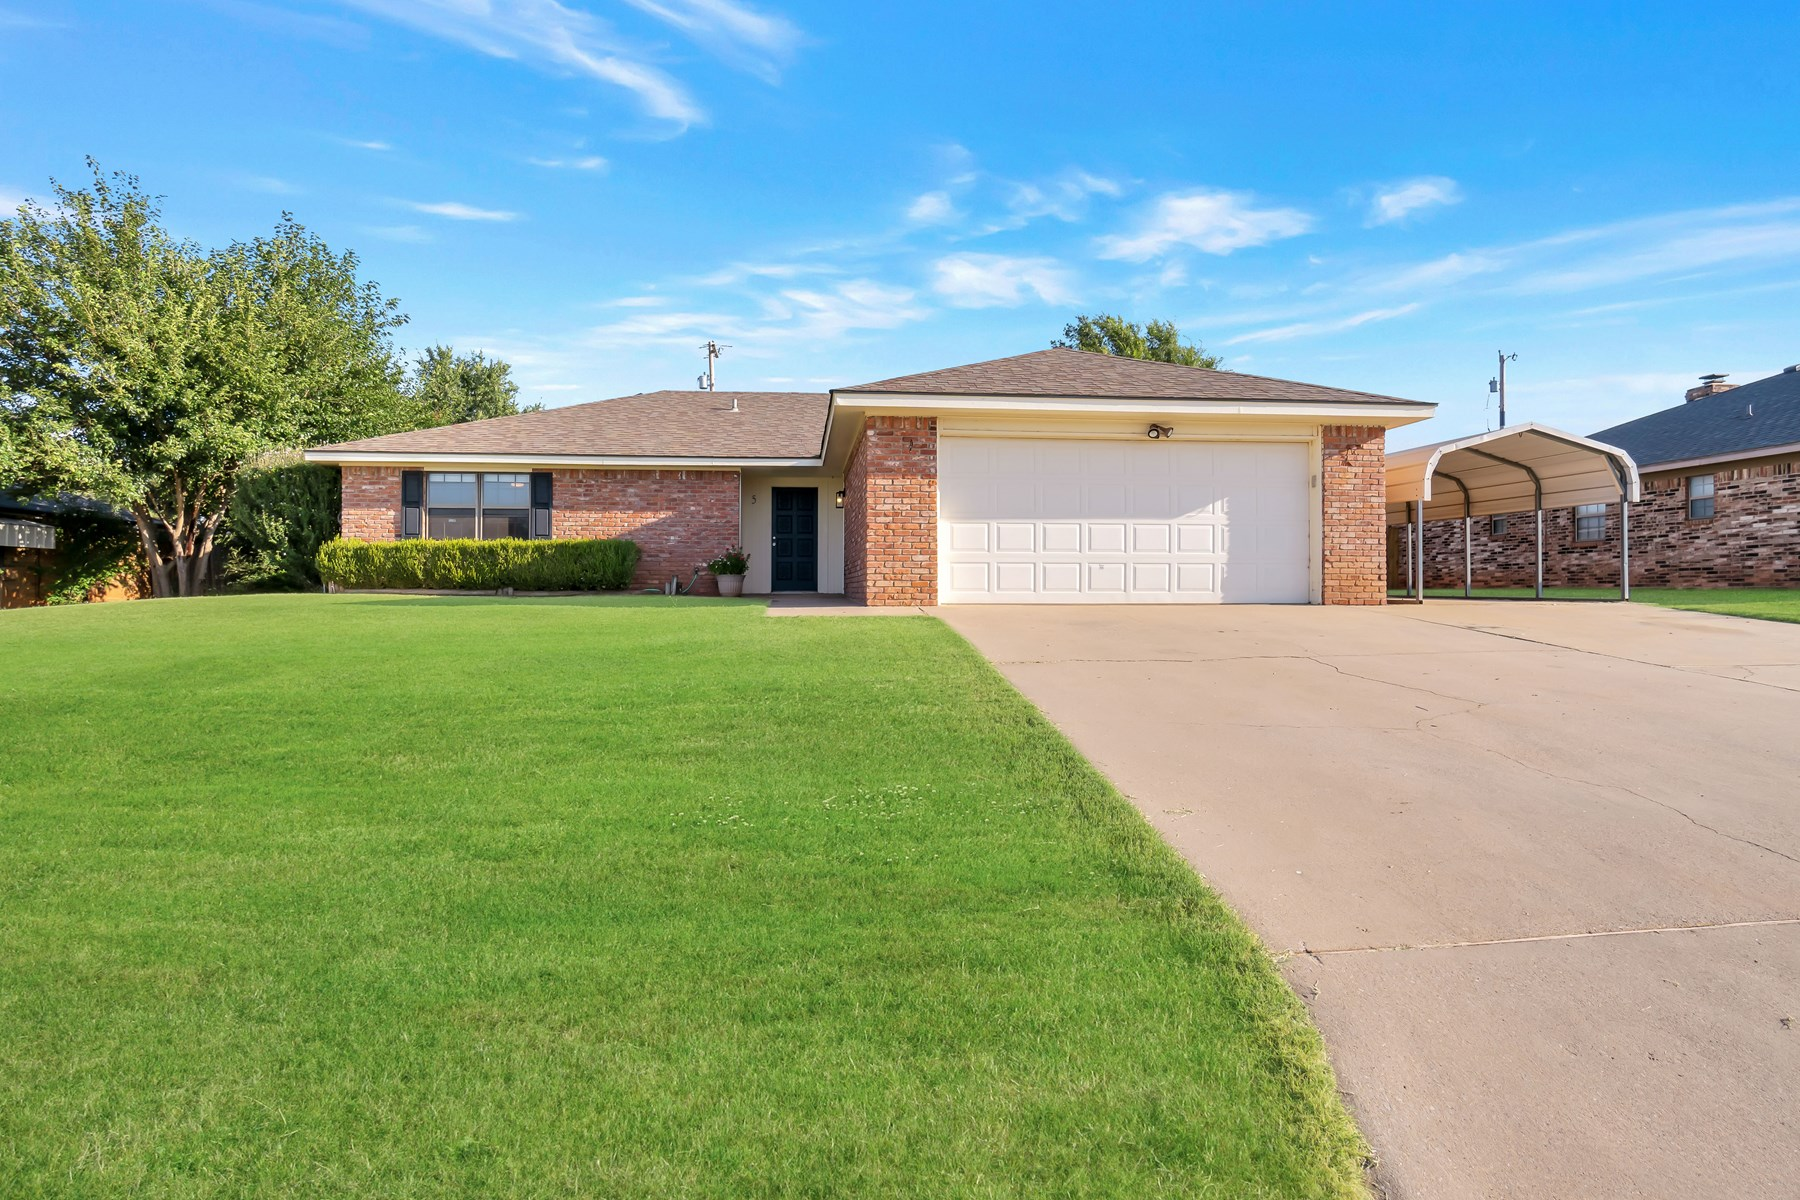 3 BEDROOM HOUSE FOR SALE IN SAYRE, OKLAHOMA